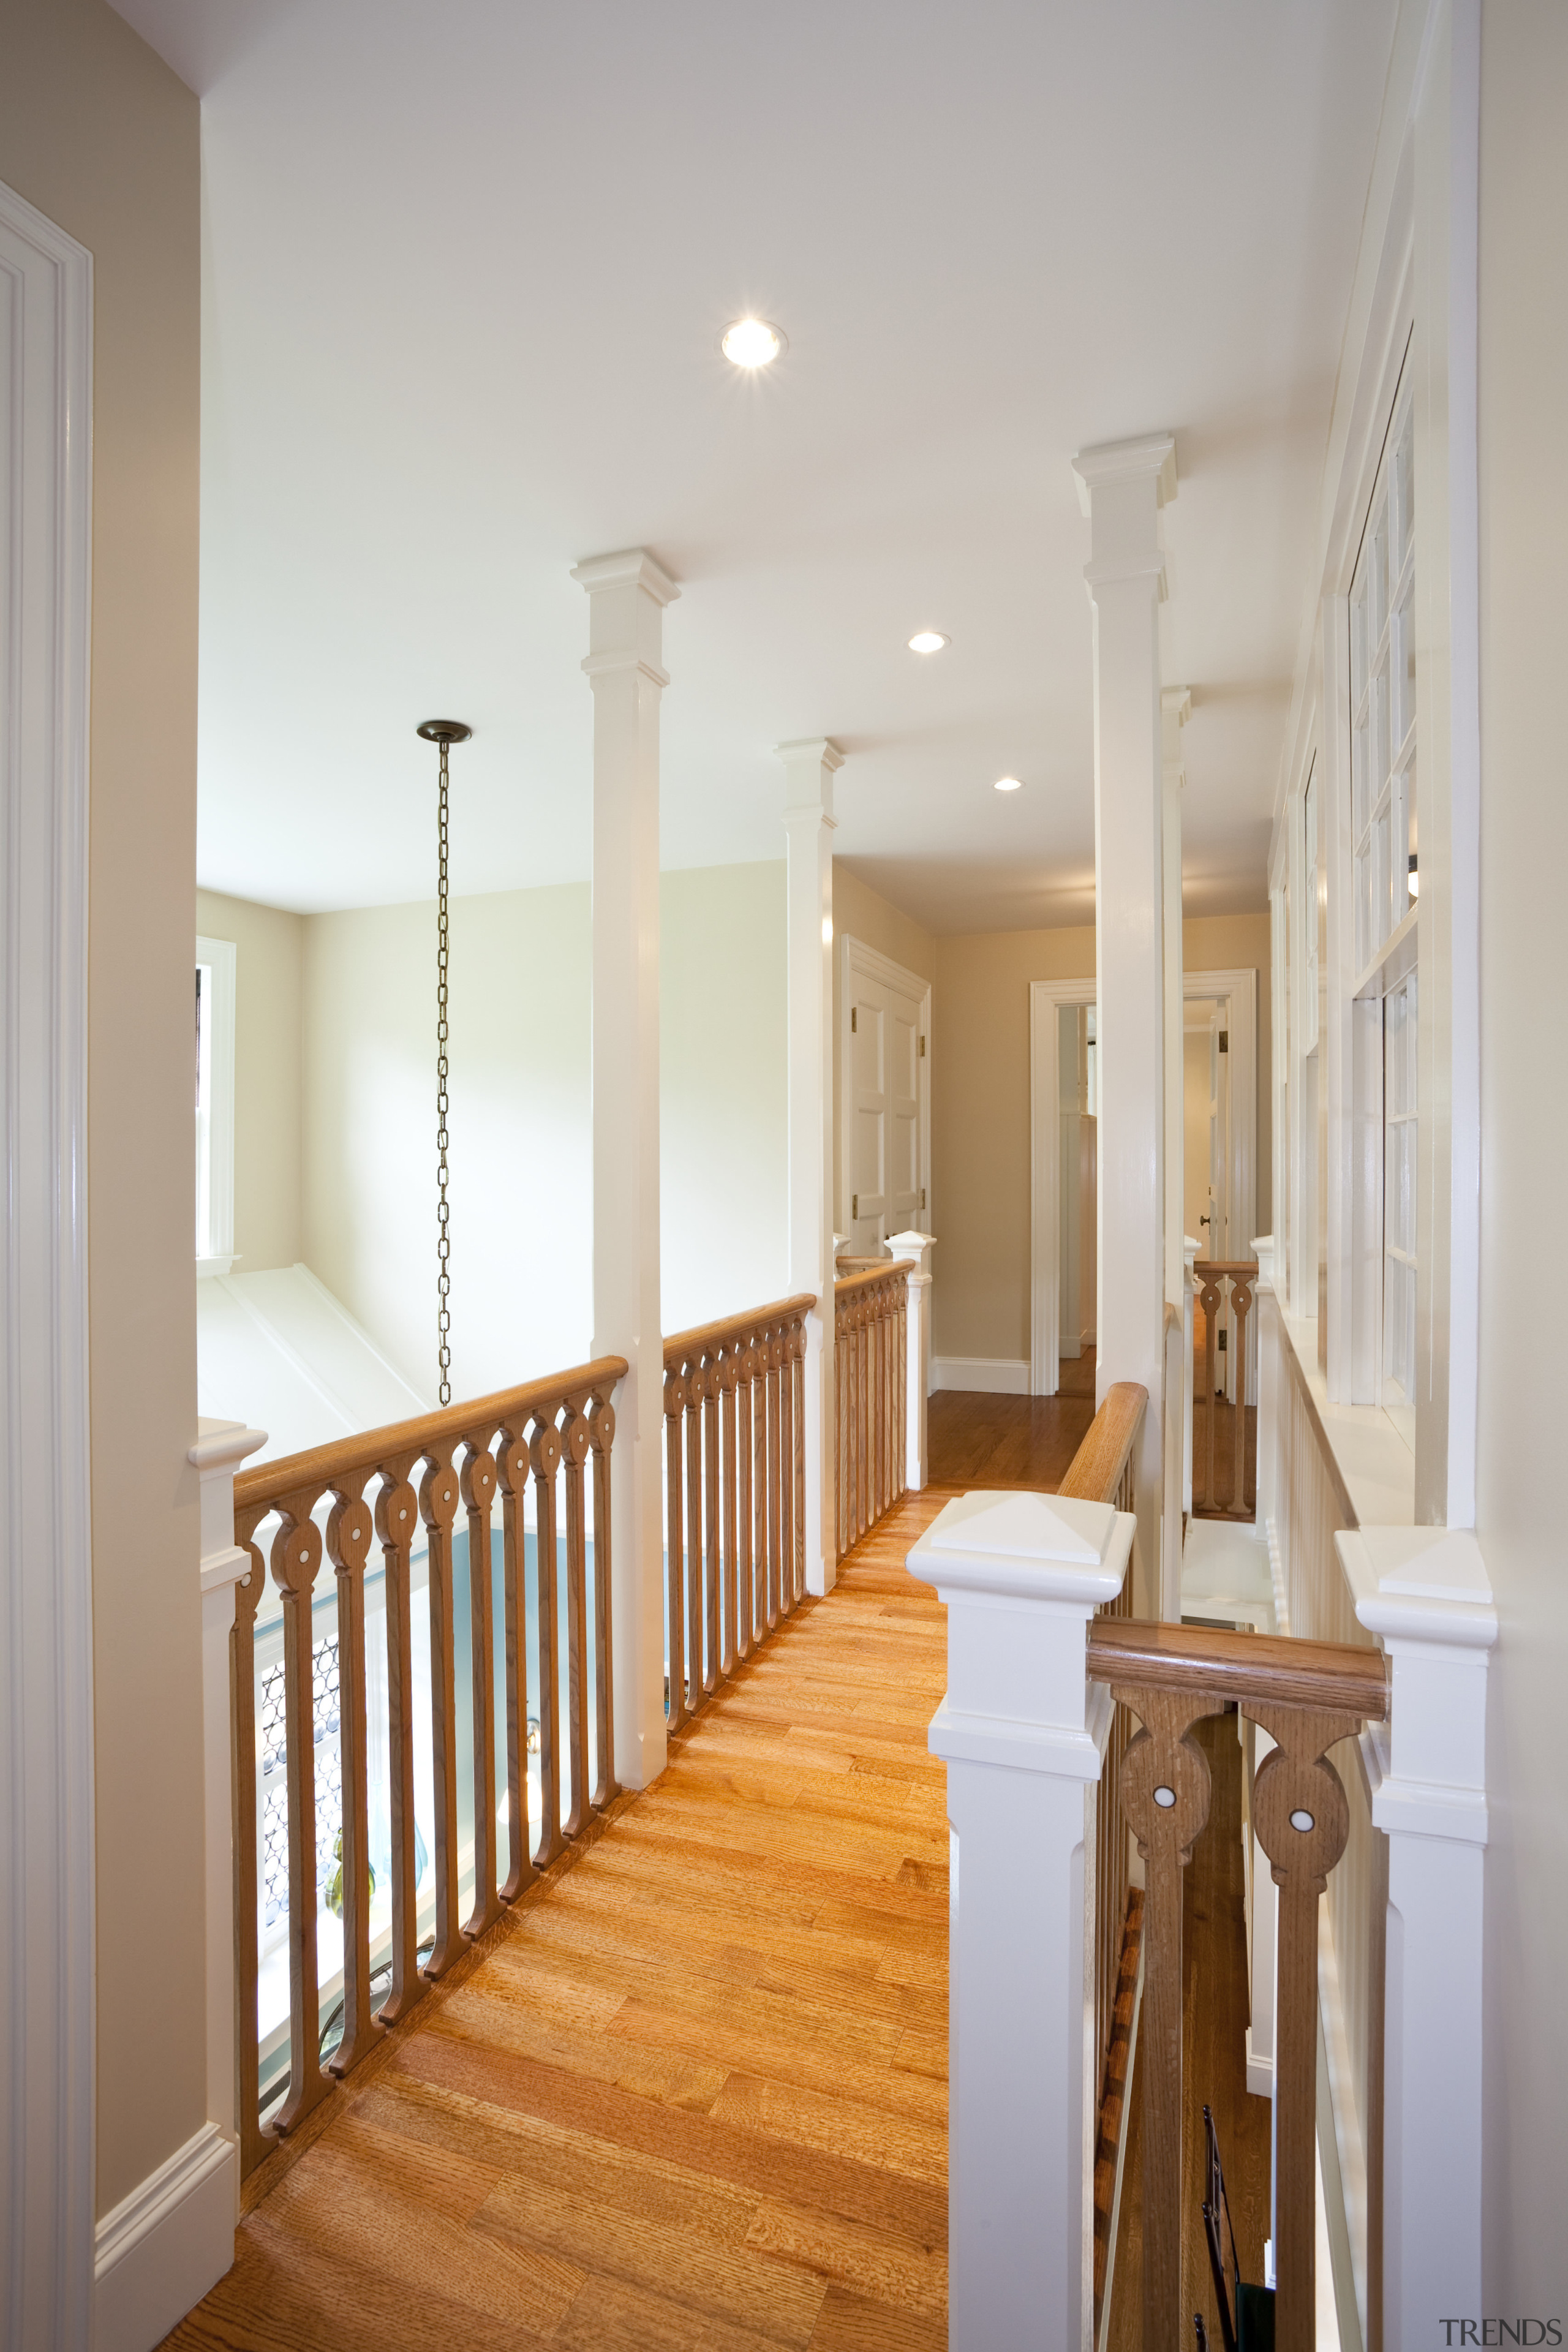 View of home in the historic Brattle Street baluster, ceiling, column, daylighting, estate, floor, flooring, hall, handrail, hardwood, home, house, interior design, laminate flooring, lighting, molding, real estate, room, stairs, structure, wall, window, wood, wood flooring, gray